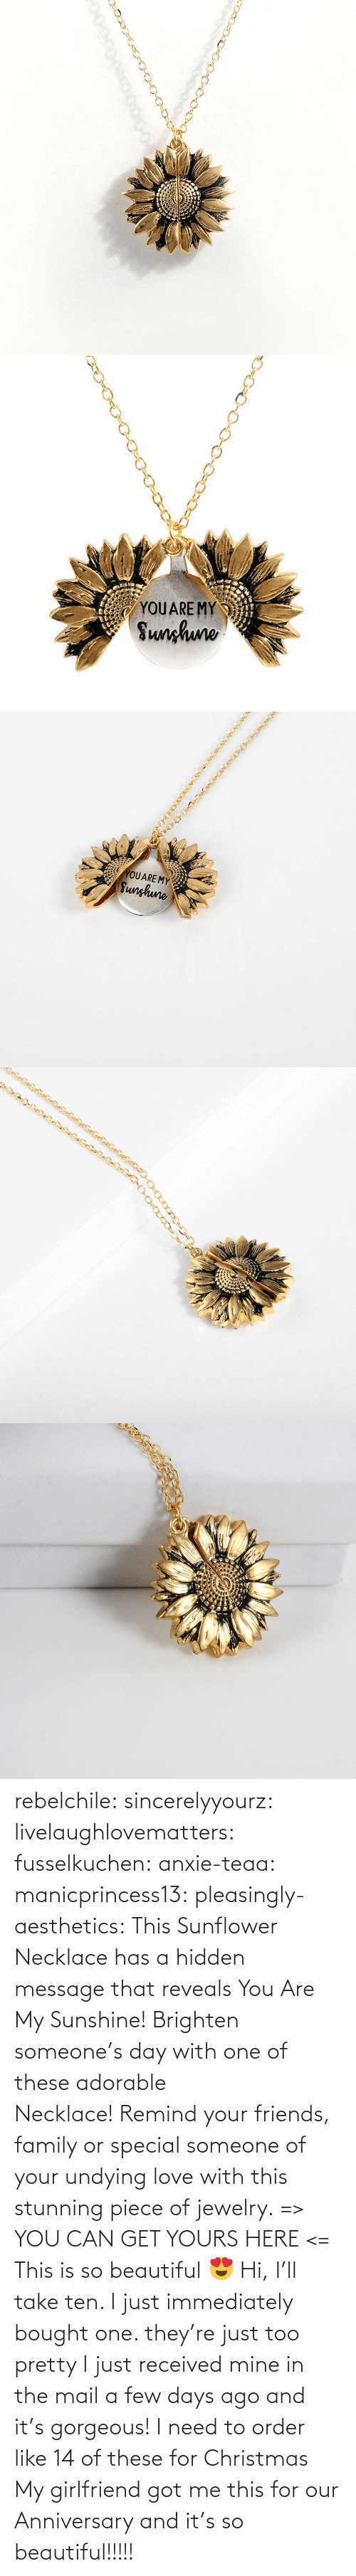 hidden: YOUARE MY  Sunhuno   YOUARE MY  Sunghune rebelchile:  sincerelyyourz:  livelaughlovematters:  fusselkuchen:  anxie-teaa:   manicprincess13:   pleasingly-aesthetics:  This Sunflower Necklace has a hidden message that reveals You Are My Sunshine! Brighten someone's day with one of these adorable Necklace! Remind your friends, family or special someone of your undying love with this stunning piece of jewelry. => YOU CAN GET YOURS HERE <=   This is so beautiful 😍    Hi, I'll take ten.    I just immediately bought one. they're just too pretty   I just received mine in the mail a few days ago and it's gorgeous!   I need to order like 14 of these for Christmas    My girlfriend got me this for our Anniversary and it's so beautiful!!!!!